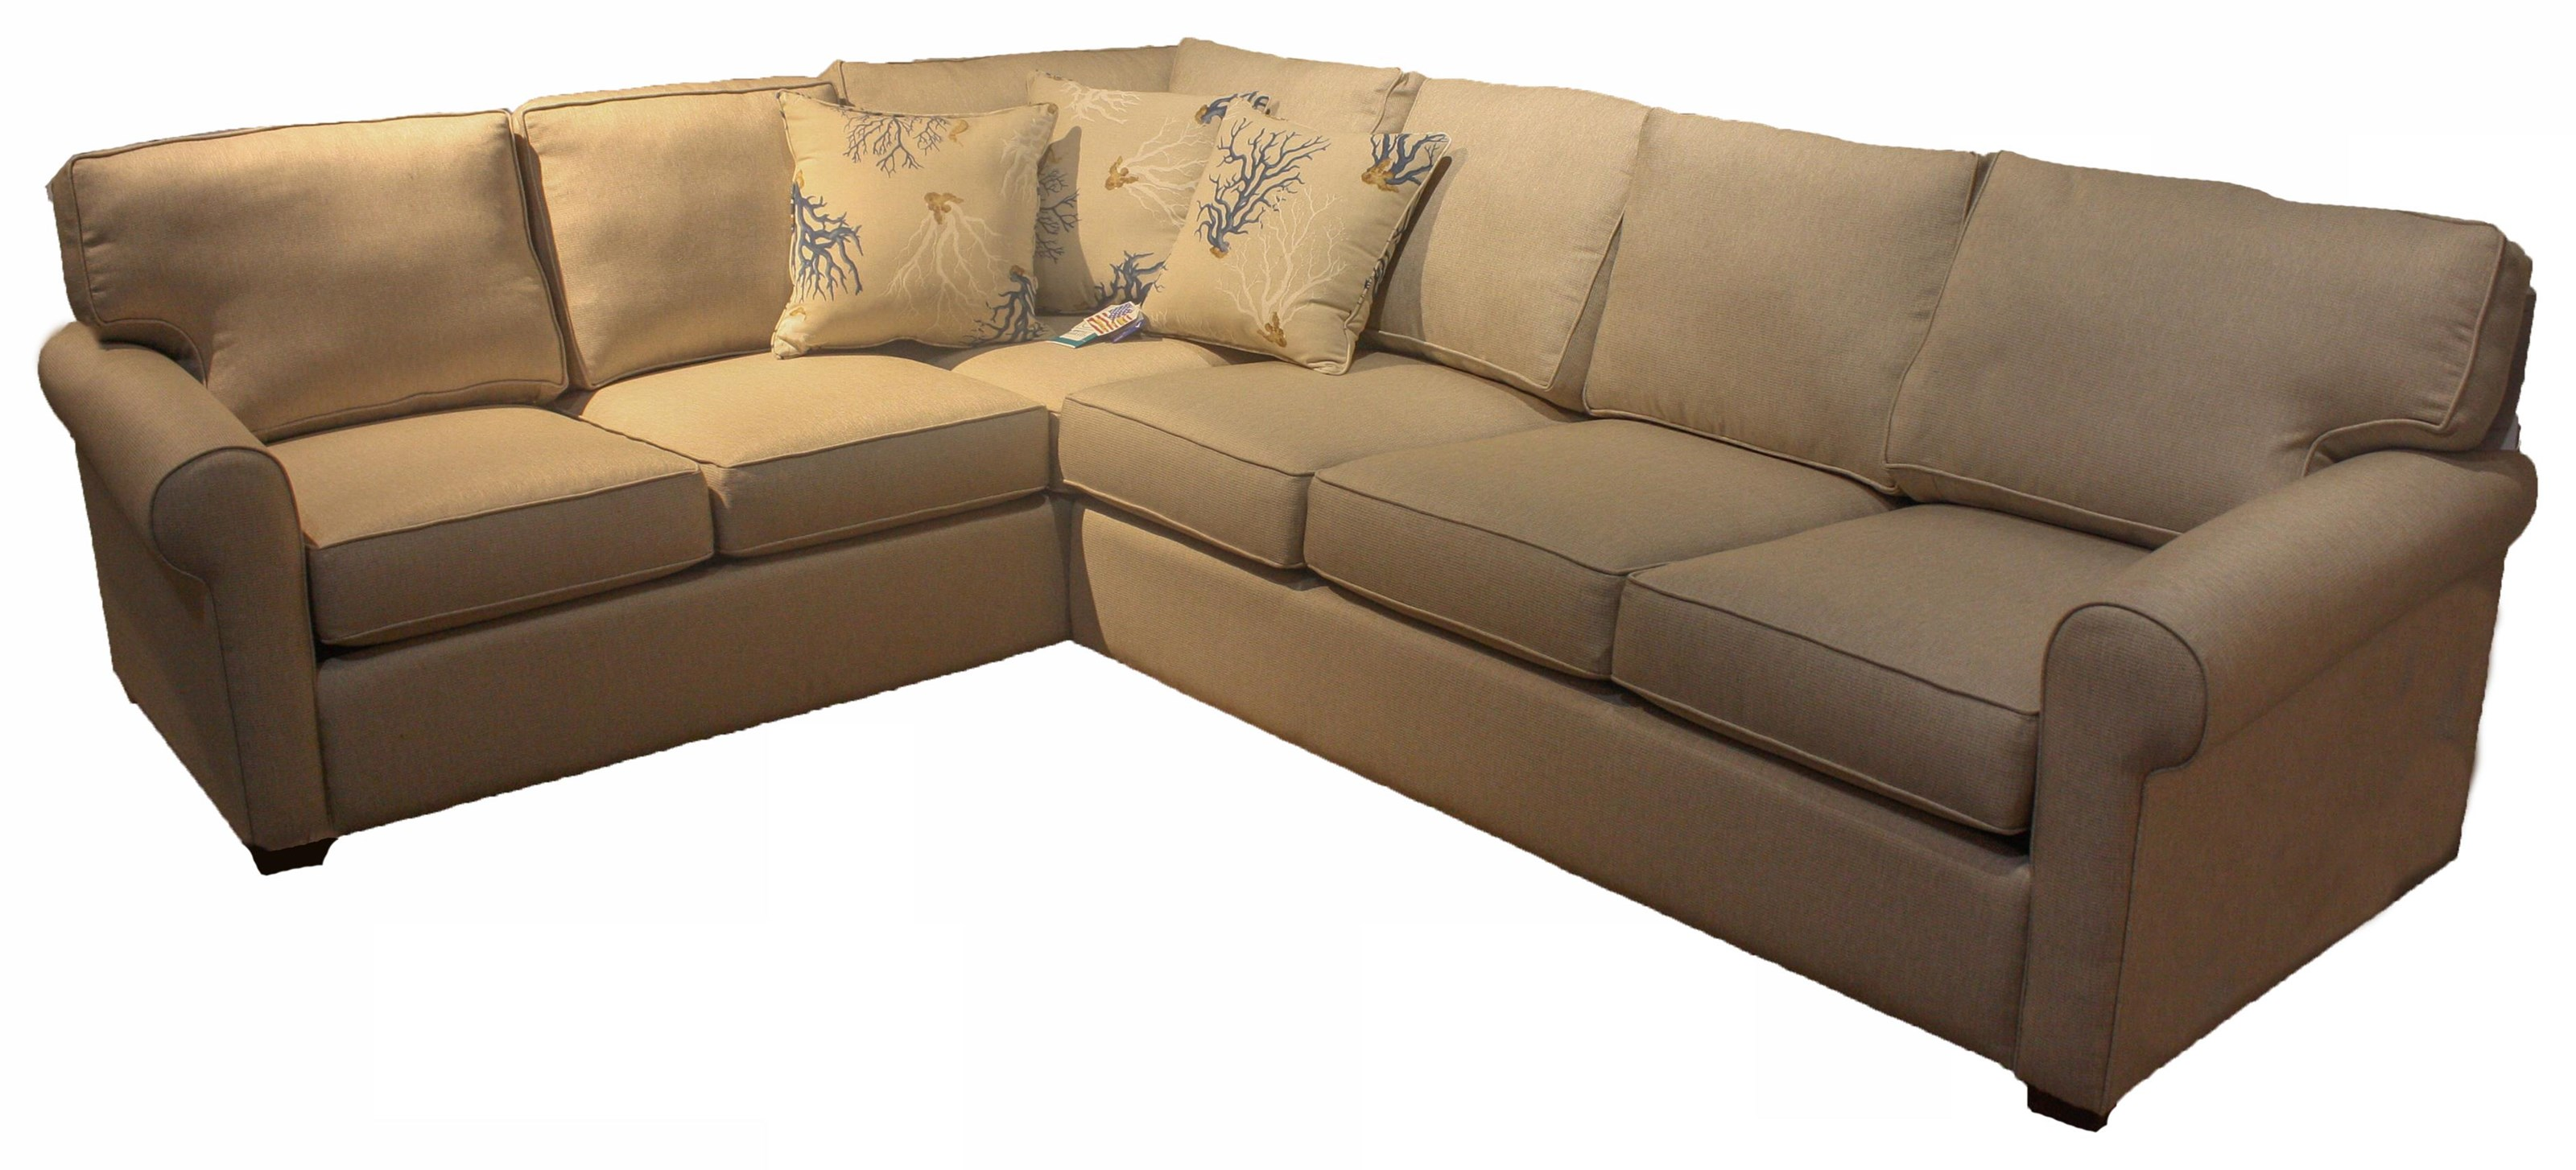 402 2 PC Sectional by Capris Furniture at Esprit Decor Home Furnishings